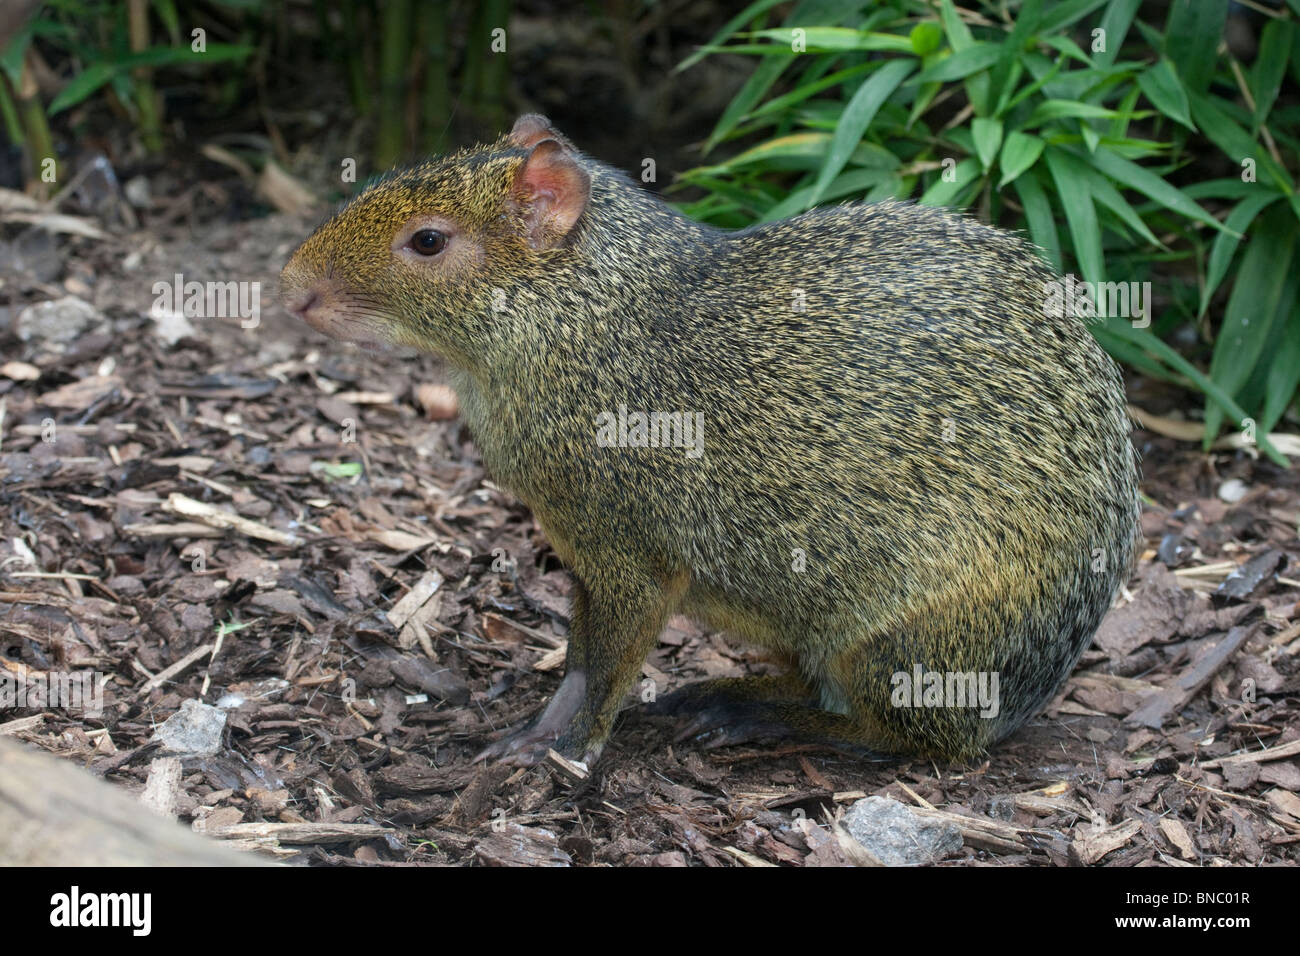 Capybara, Hydrochoerus hydrochaeris, from Central and South America. - Stock Image